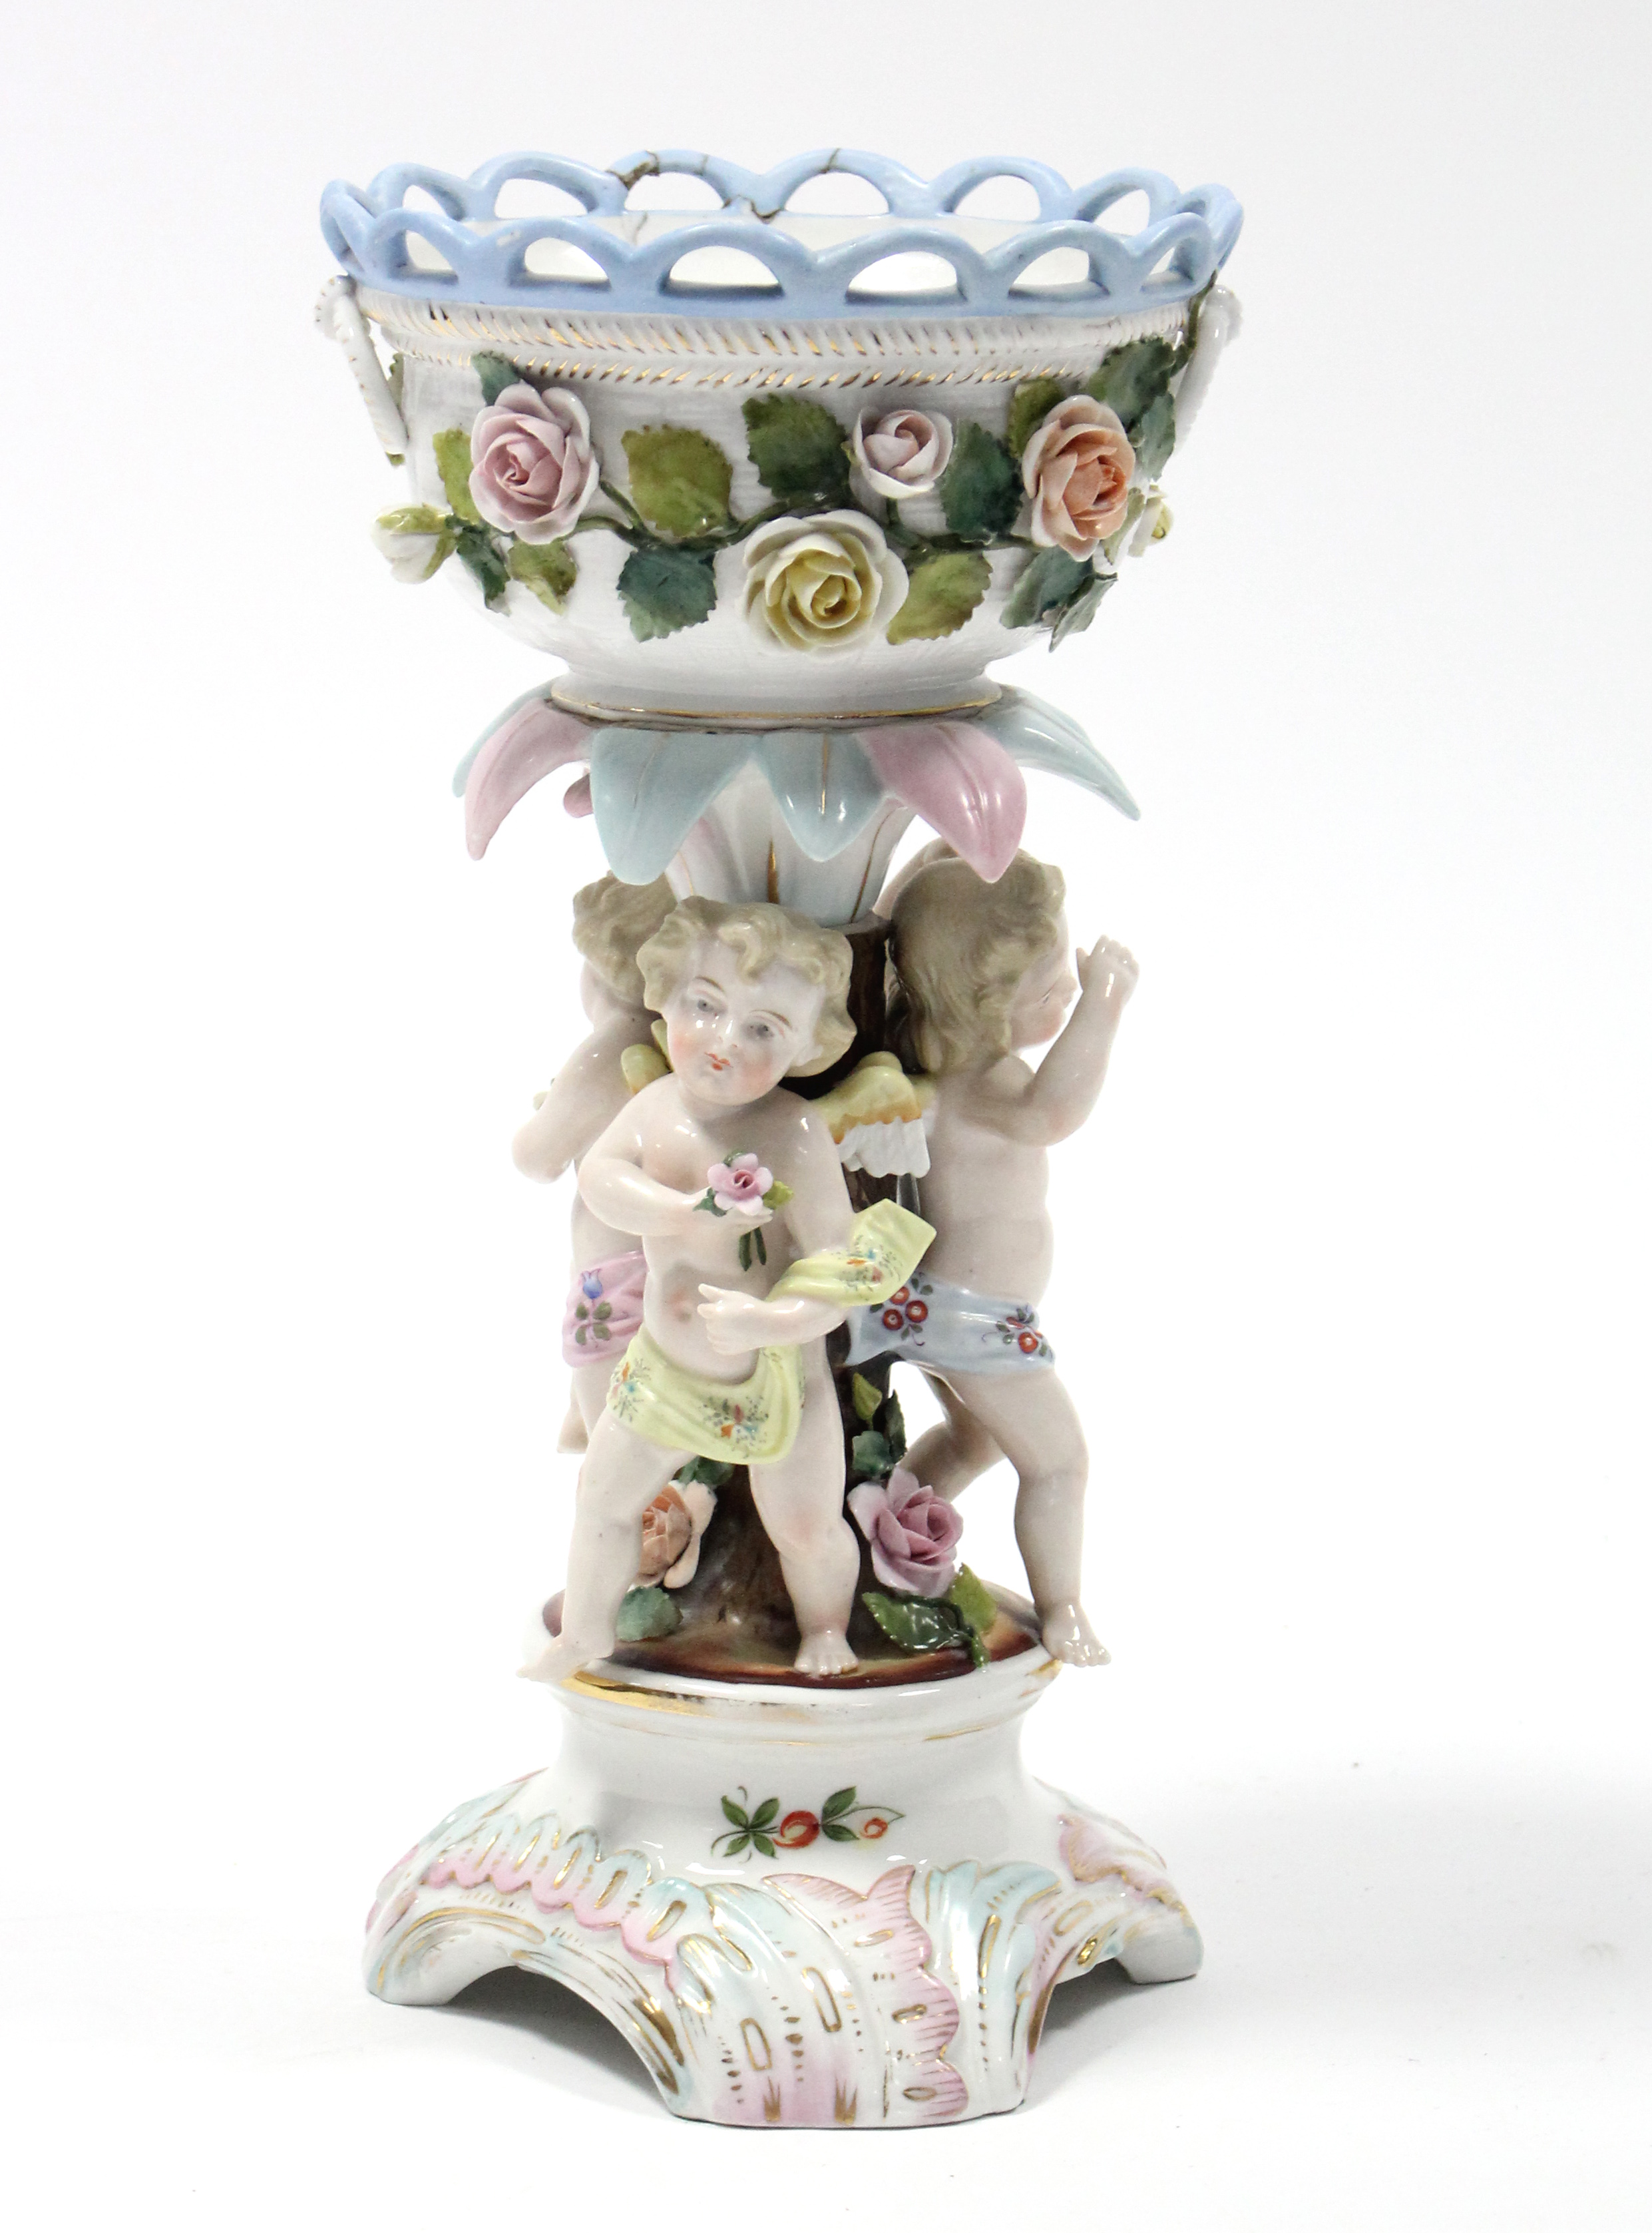 Lot 167 - A Sitzendorf porcelain centrepiece with round floral-encrusted bowl supported by three cherubs, on